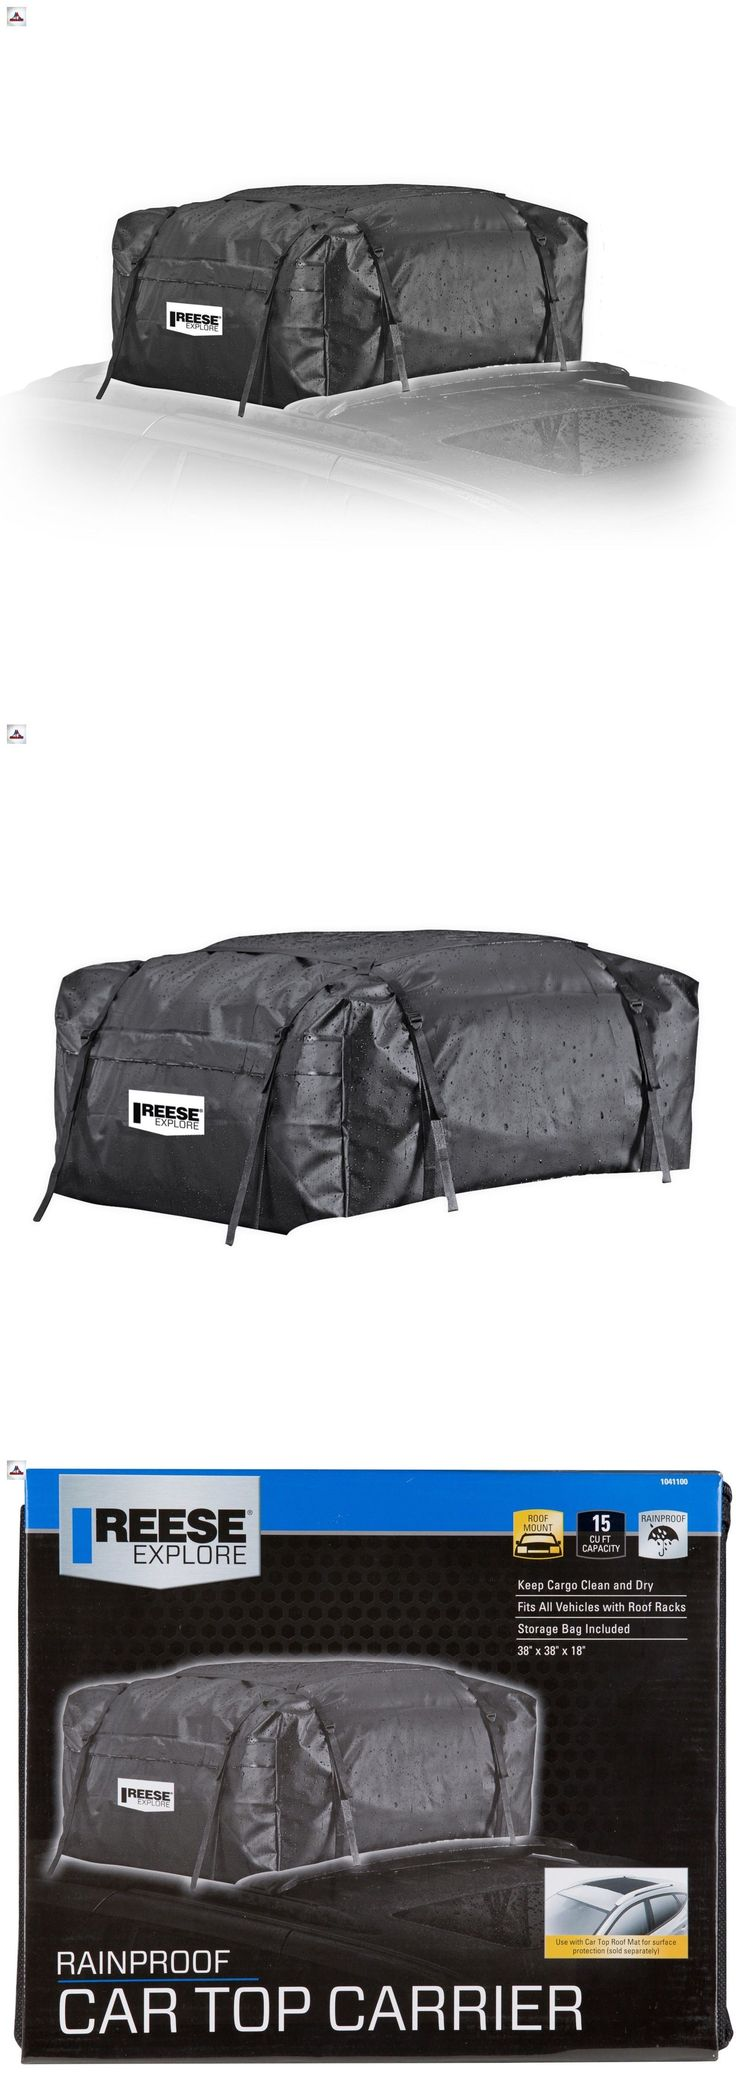 Car Racks 114254: Car Roof Top Cargo Soft Suv Deluxe Carrier Bag Storage Weather Proof Luggage Dry -> BUY IT NOW ONLY: $49.06 on eBay!